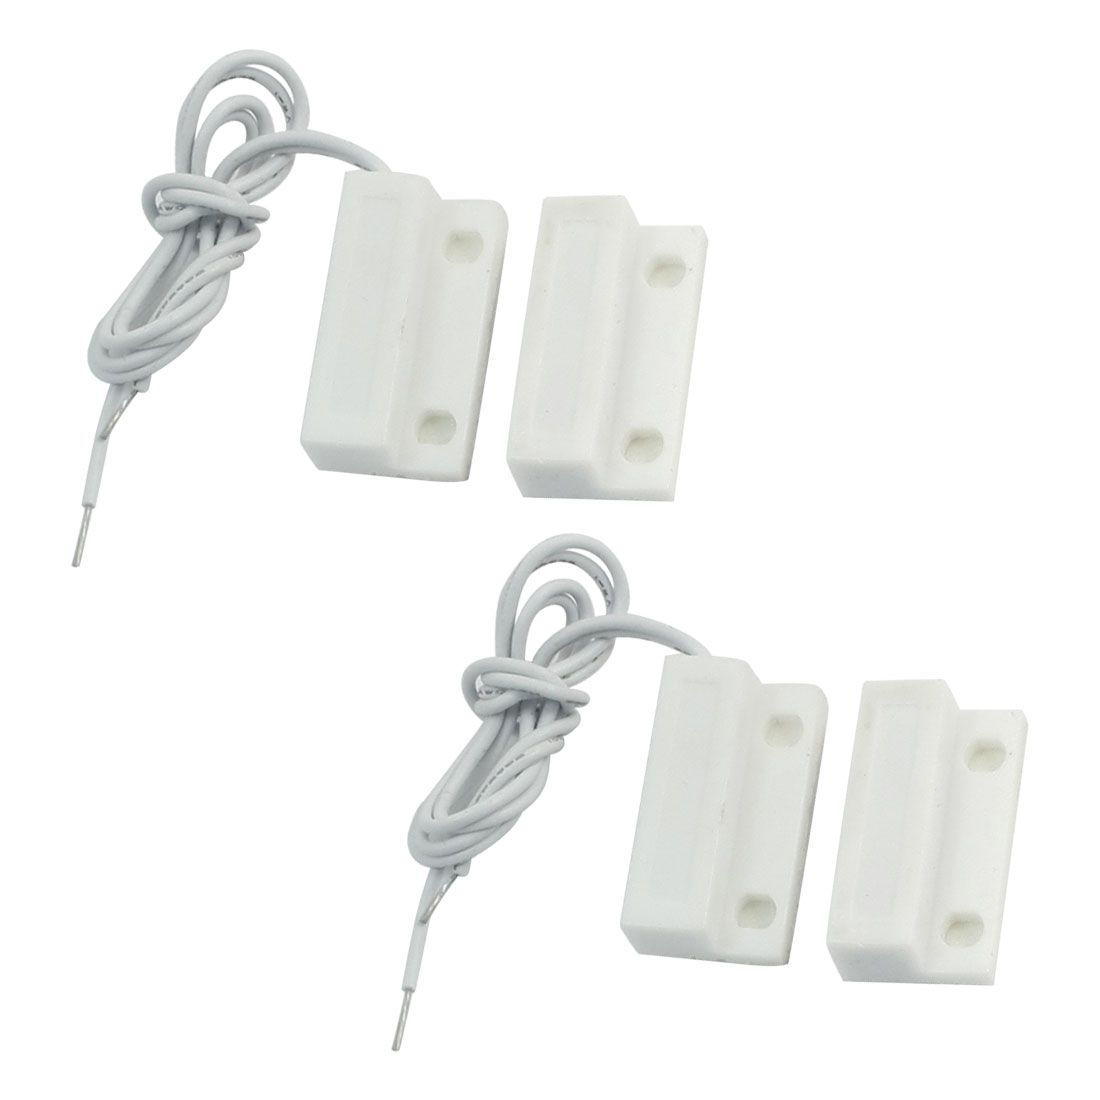 2 Pcs Normally Open Door Window Magnetic Contact Reed Switch Alarm Security